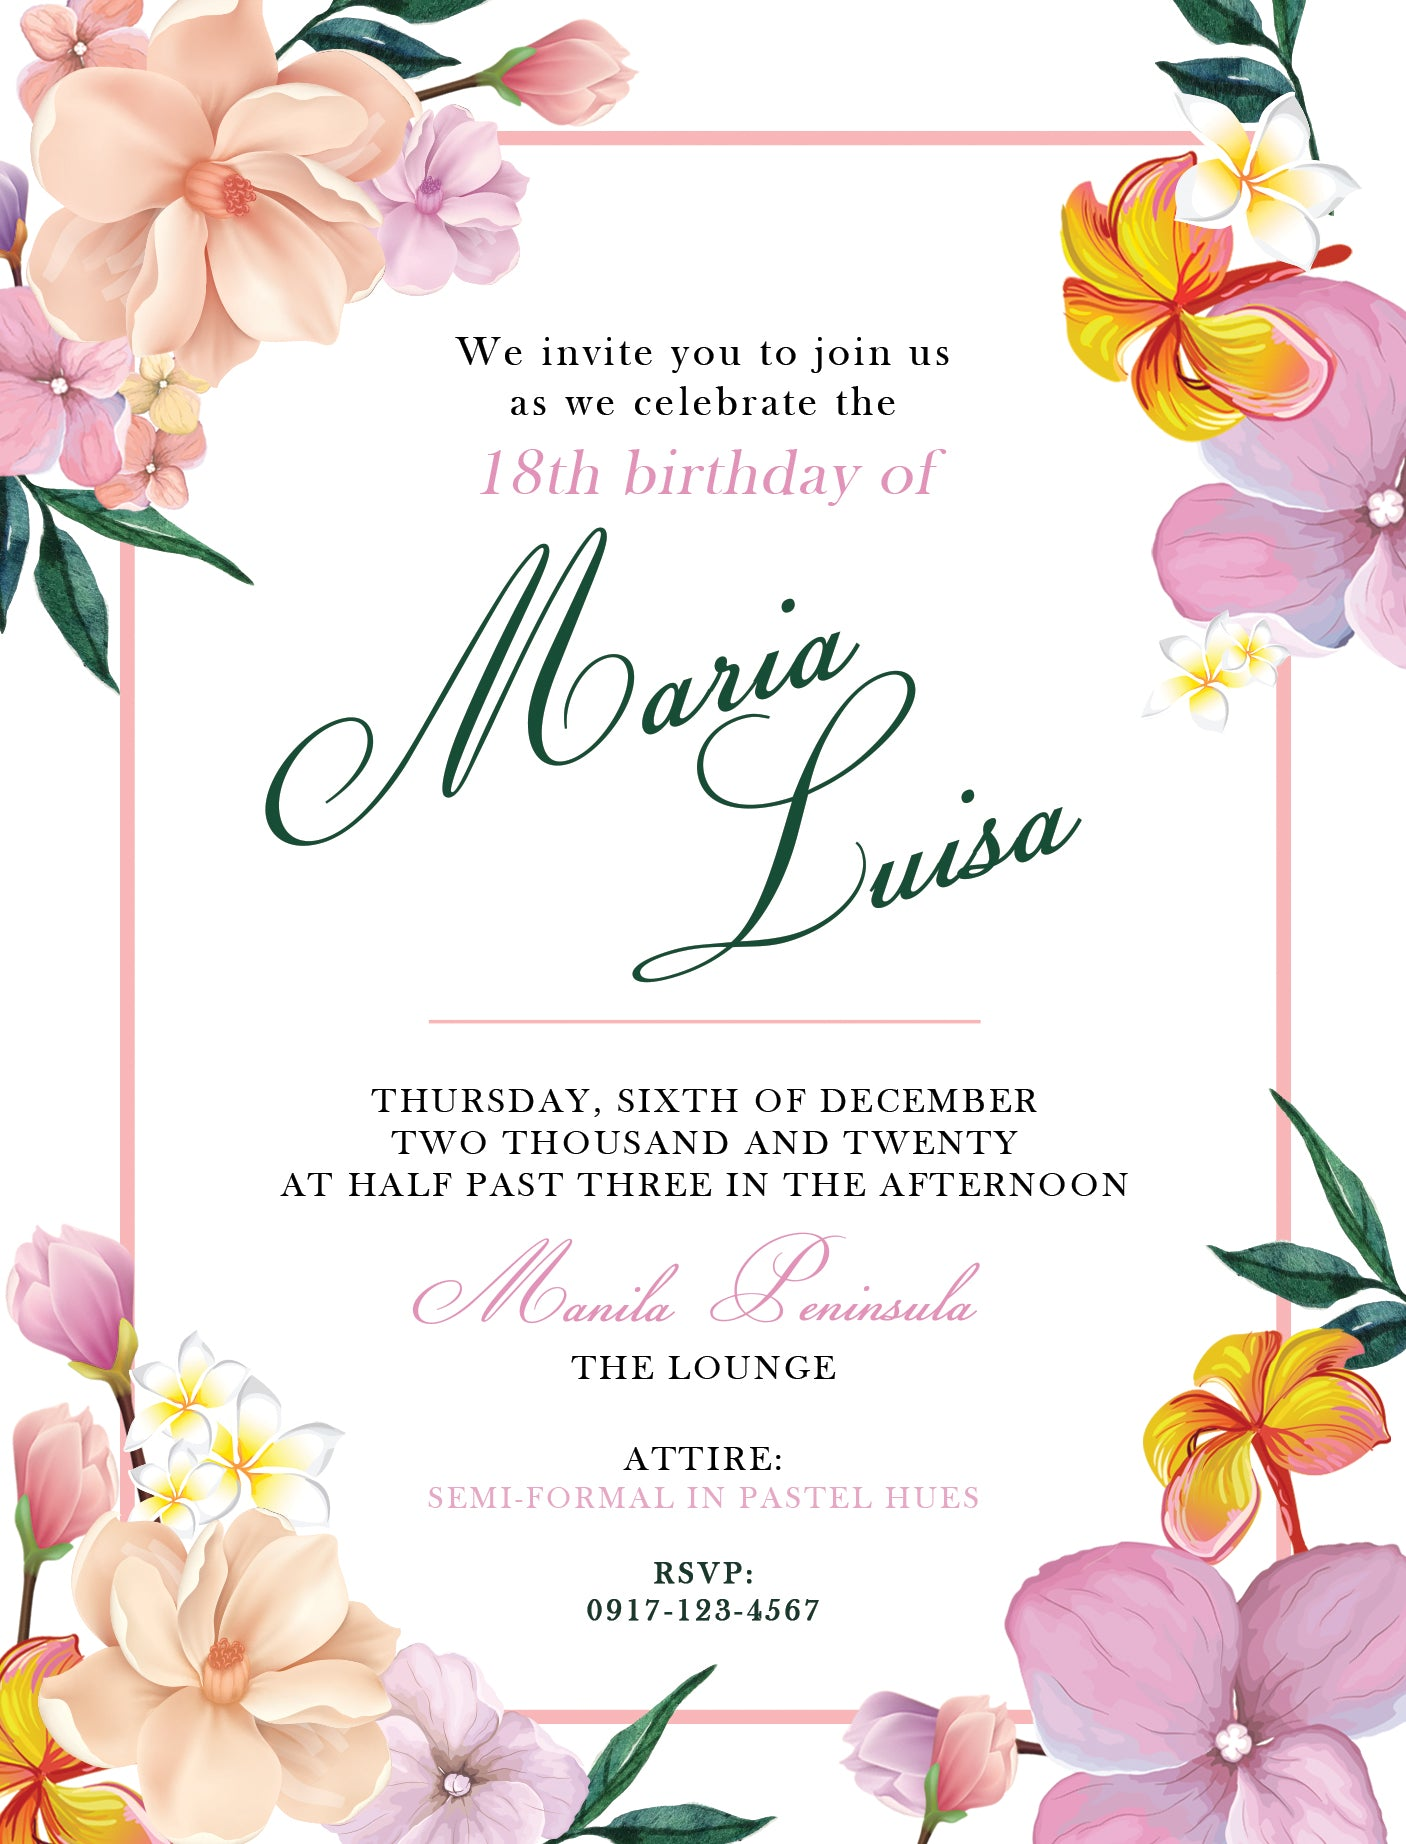 Luisa Debut Invitation